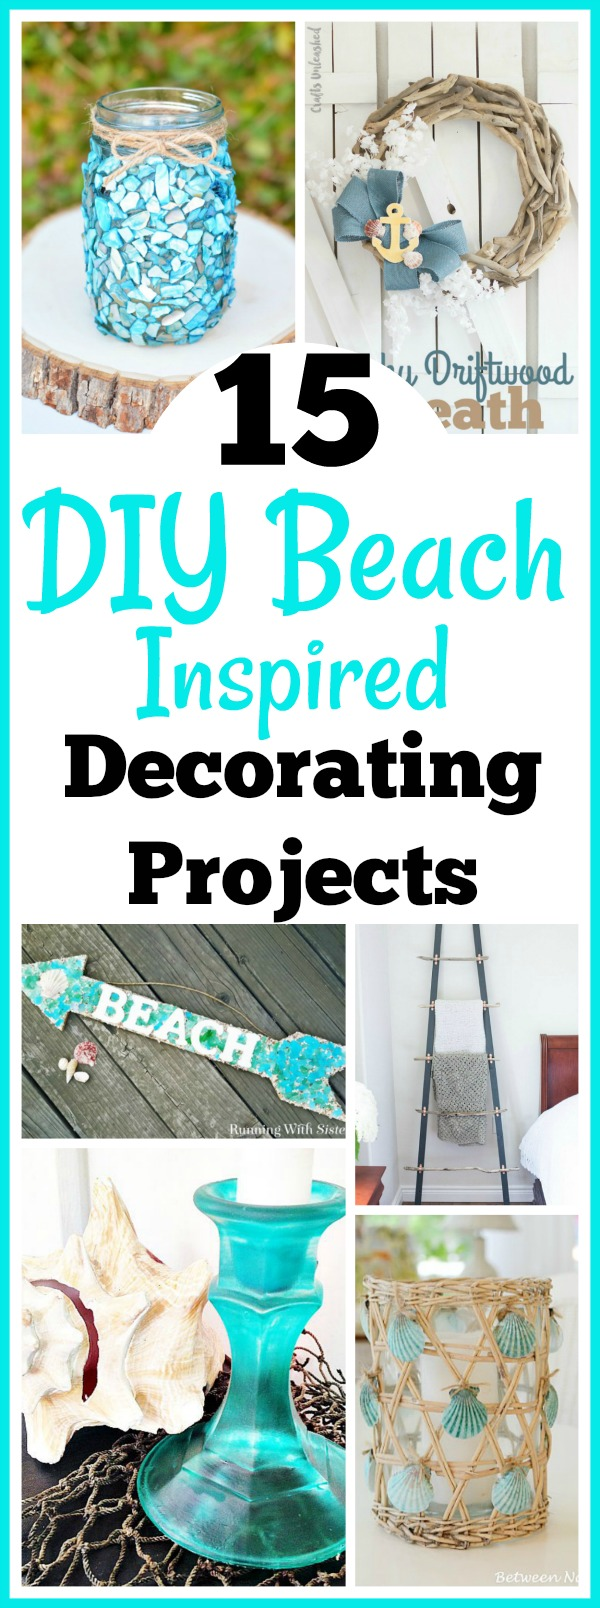 15 diy beach inspired home decor projects. Black Bedroom Furniture Sets. Home Design Ideas